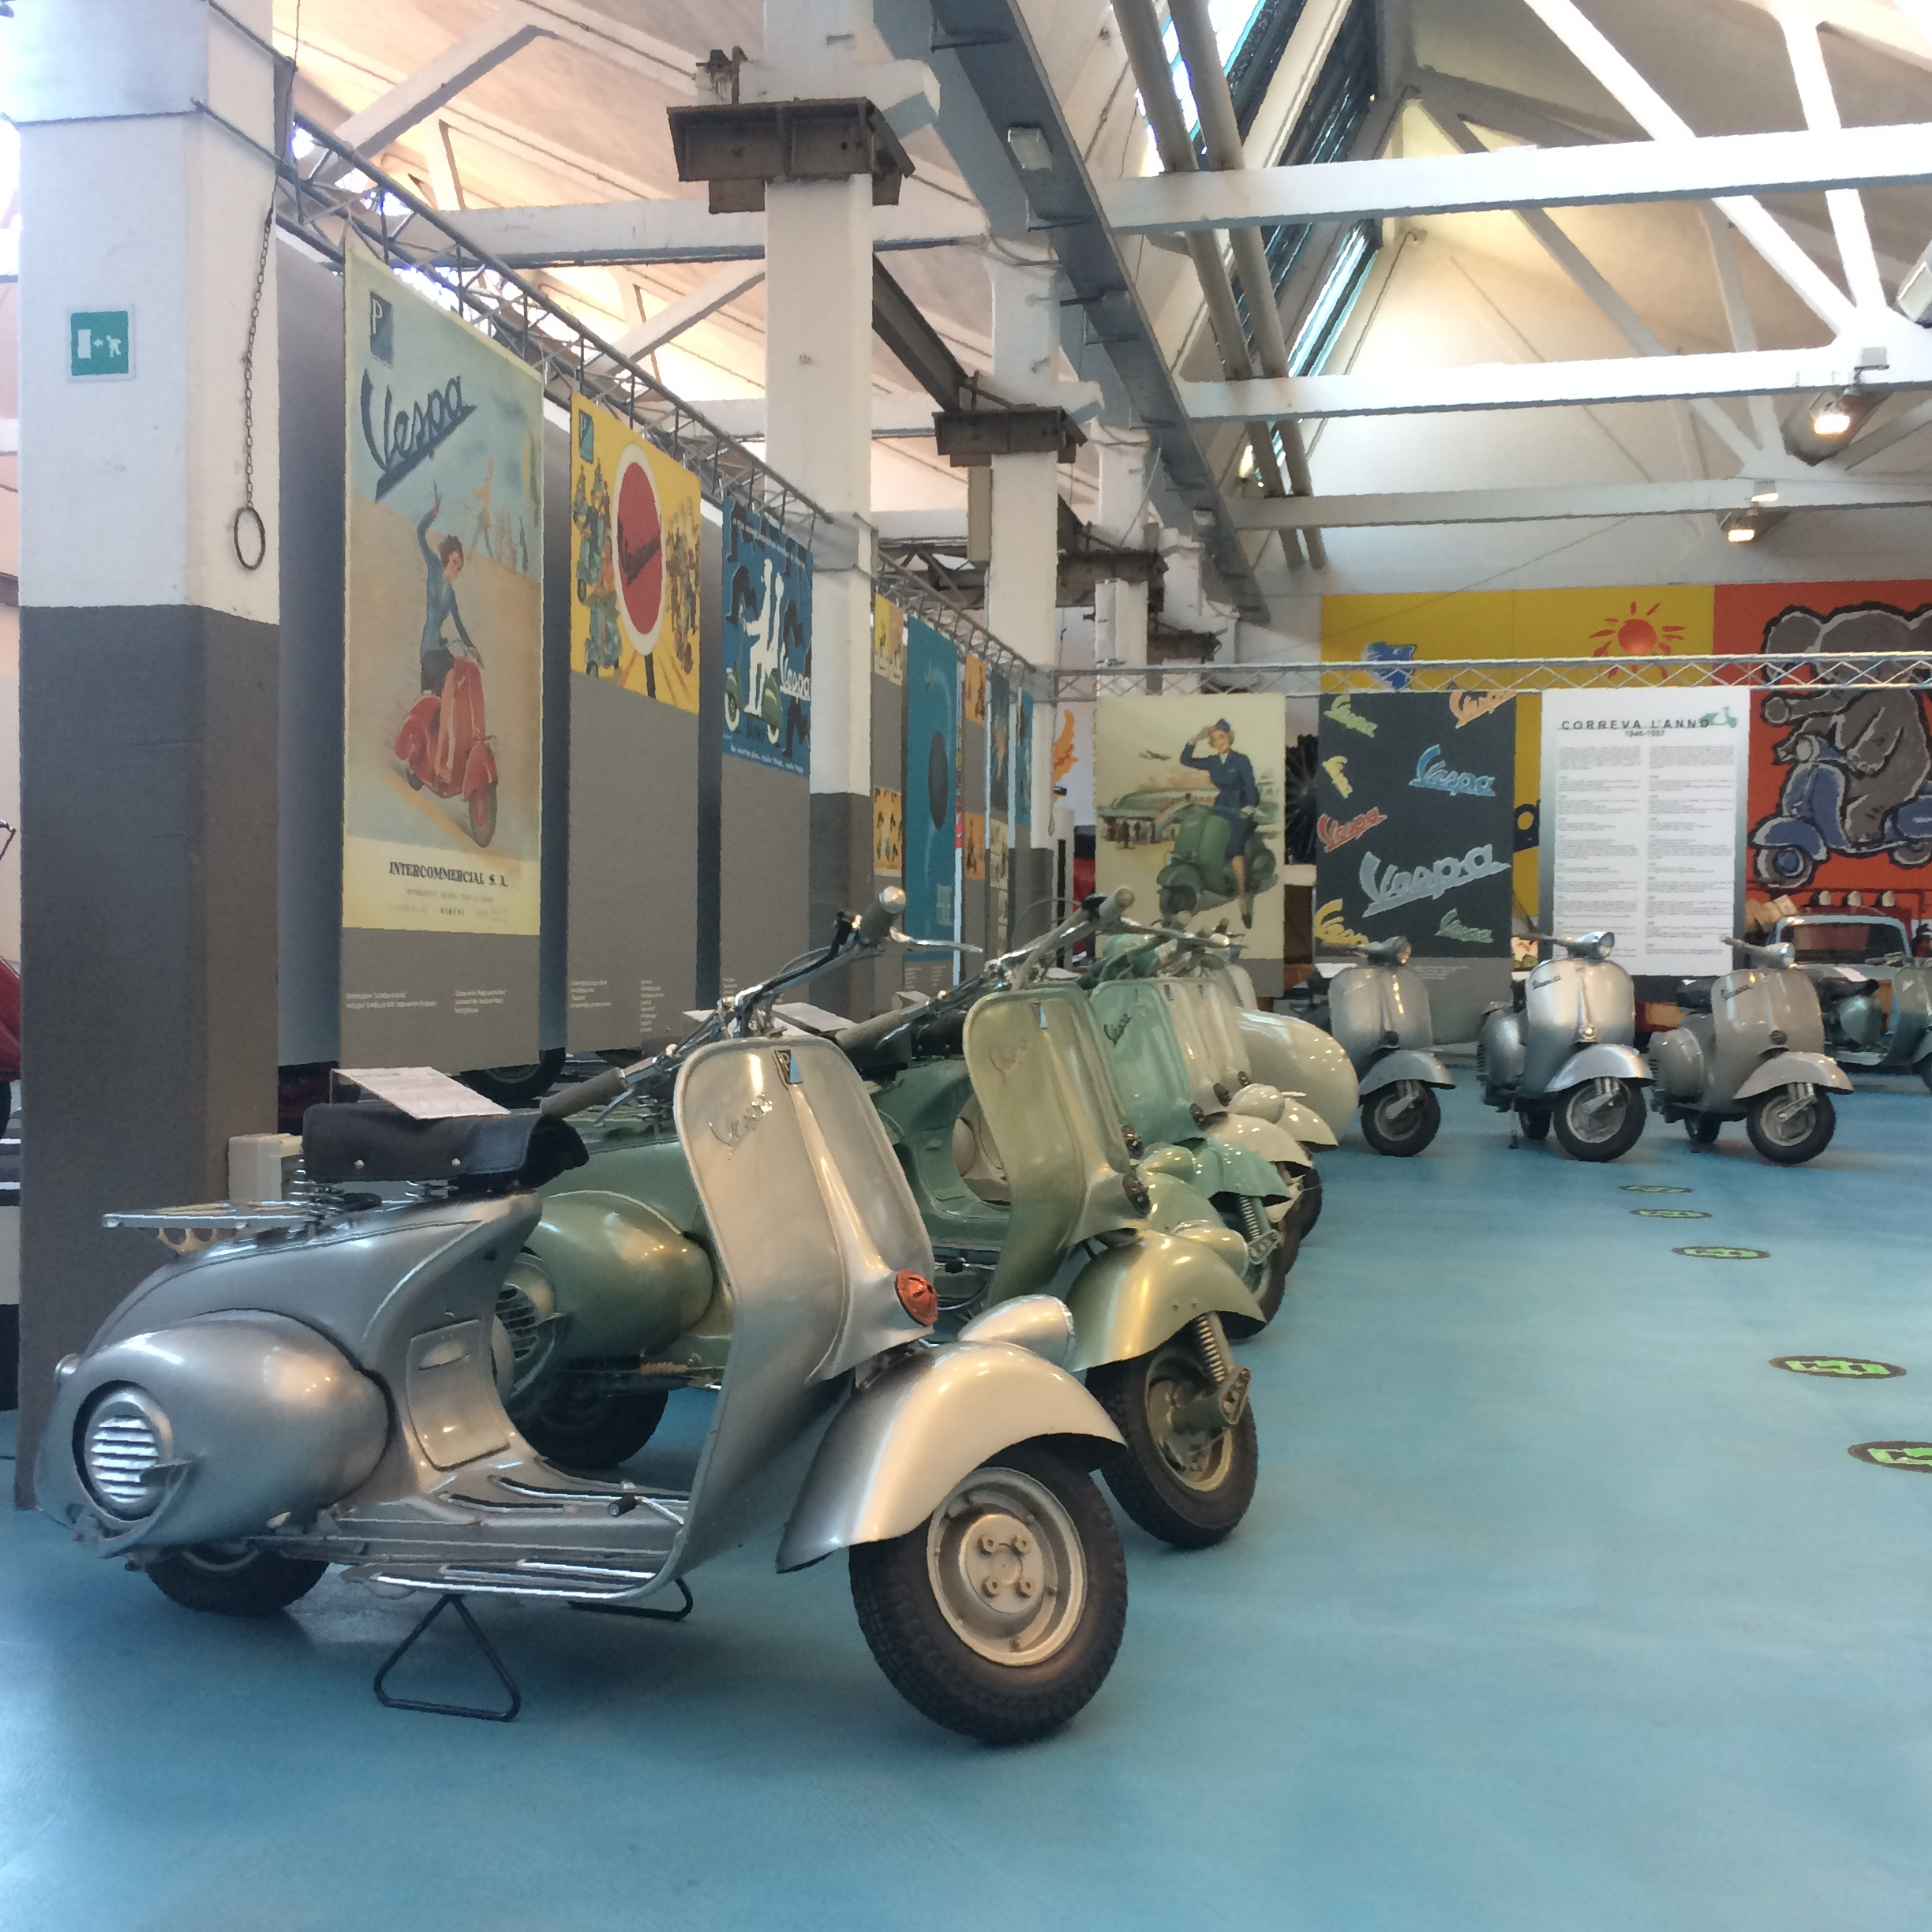 Piaggio Museum, Pontedera, October 2017 - Photo by Paul Hart